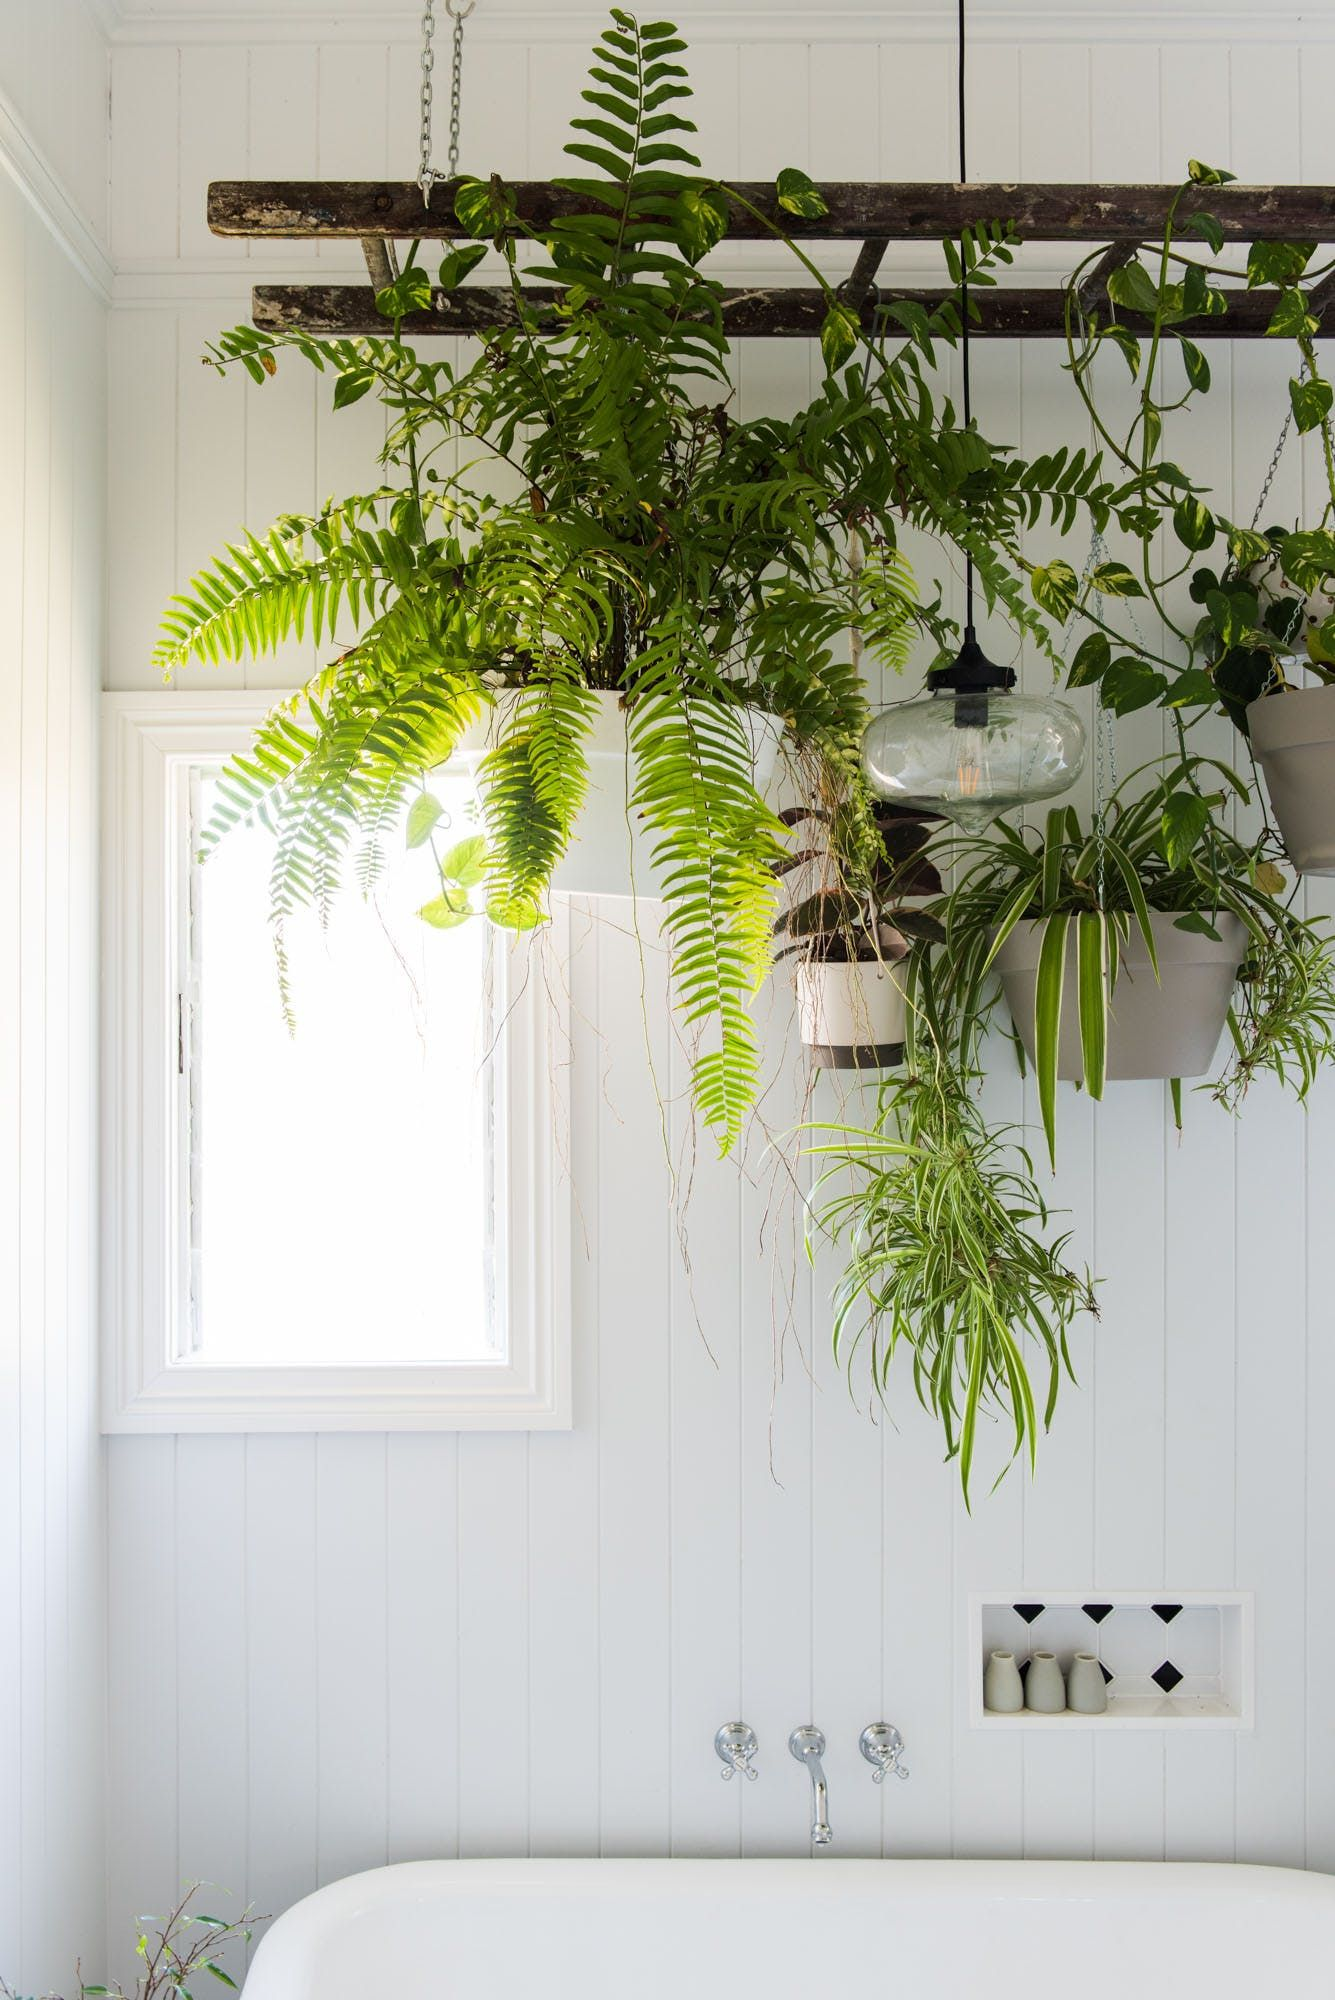 Cats And Bright Colors In An Eclectic Modern Country Home Hanging Plants Indoor Plant Display Ideas Bathroom Plants